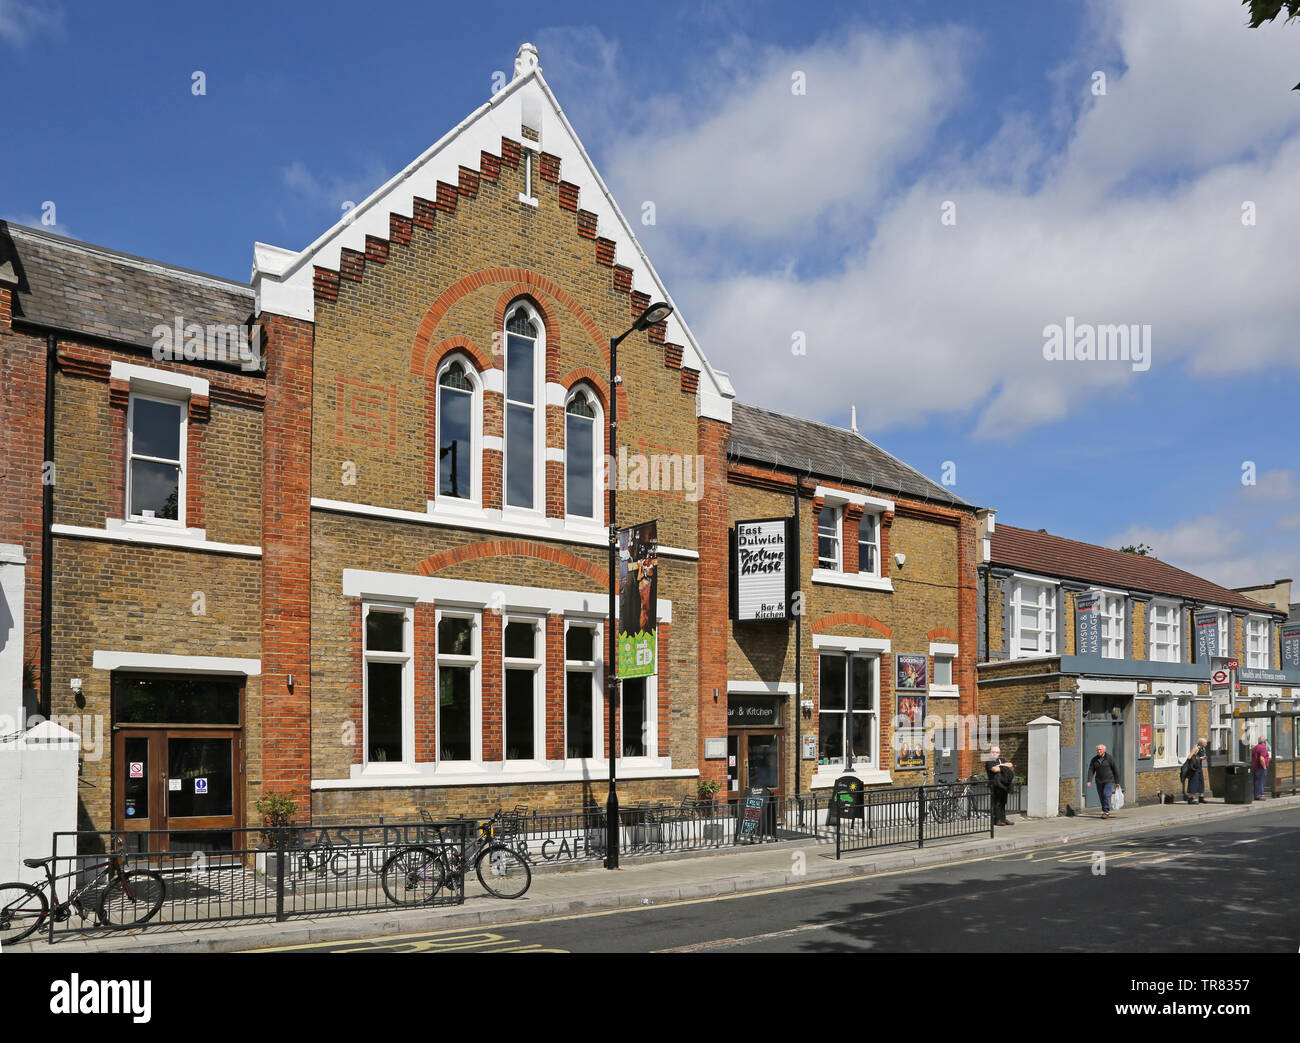 East Dulwich Picturehouse cinema. A new 3 screen cinema, bar and restaurant housed in a converted Victorian school building on Lordship Lane. - Stock Image